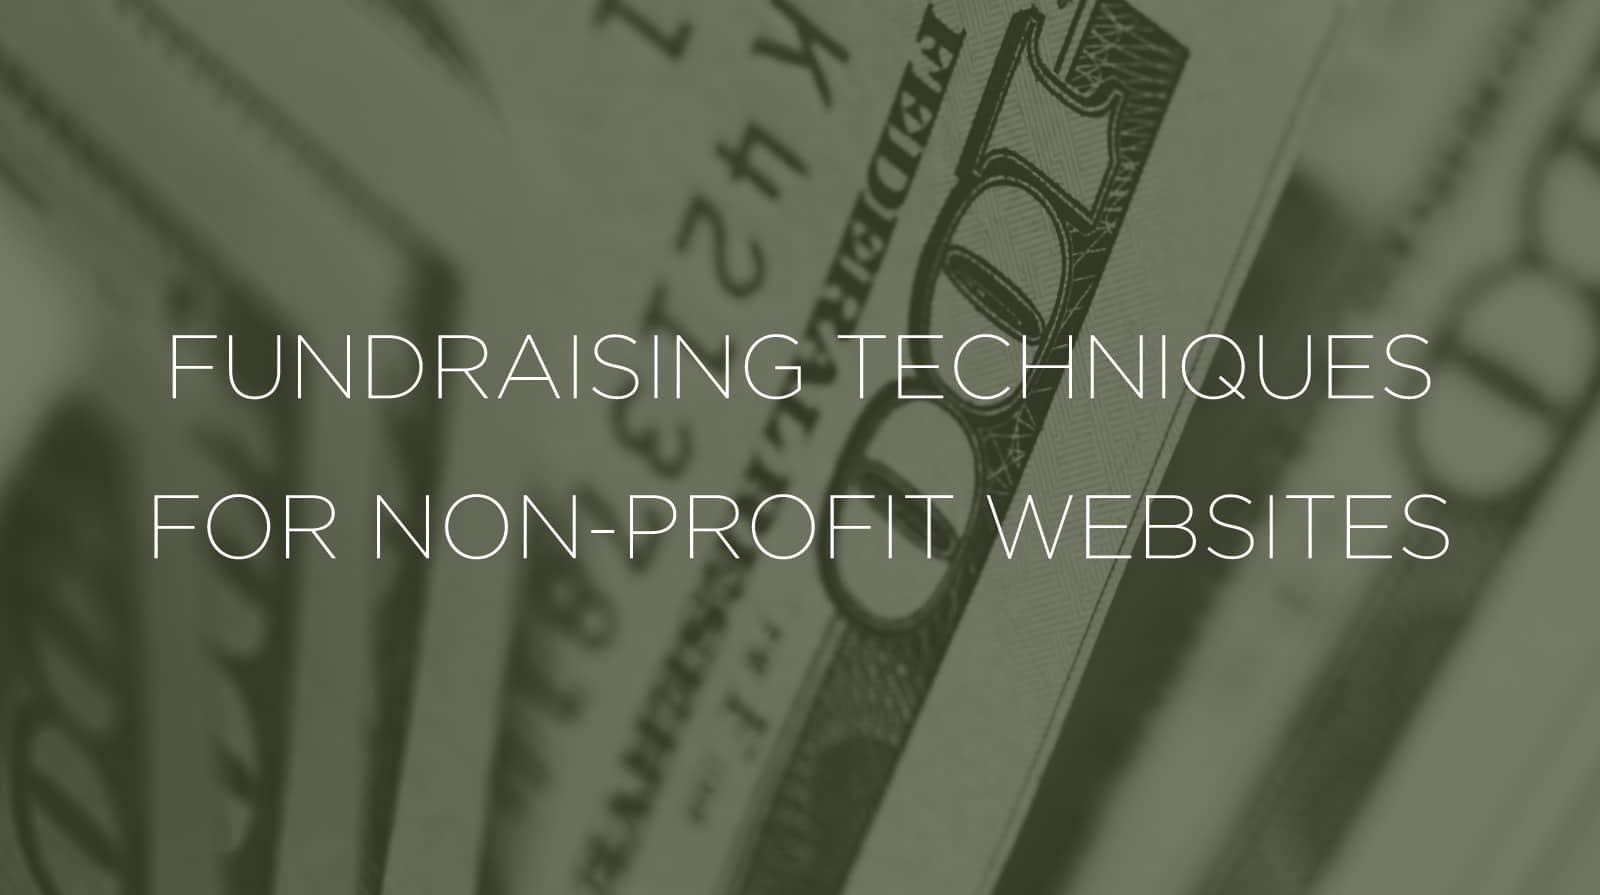 Fundraising Techniques for Non-Profit Websites